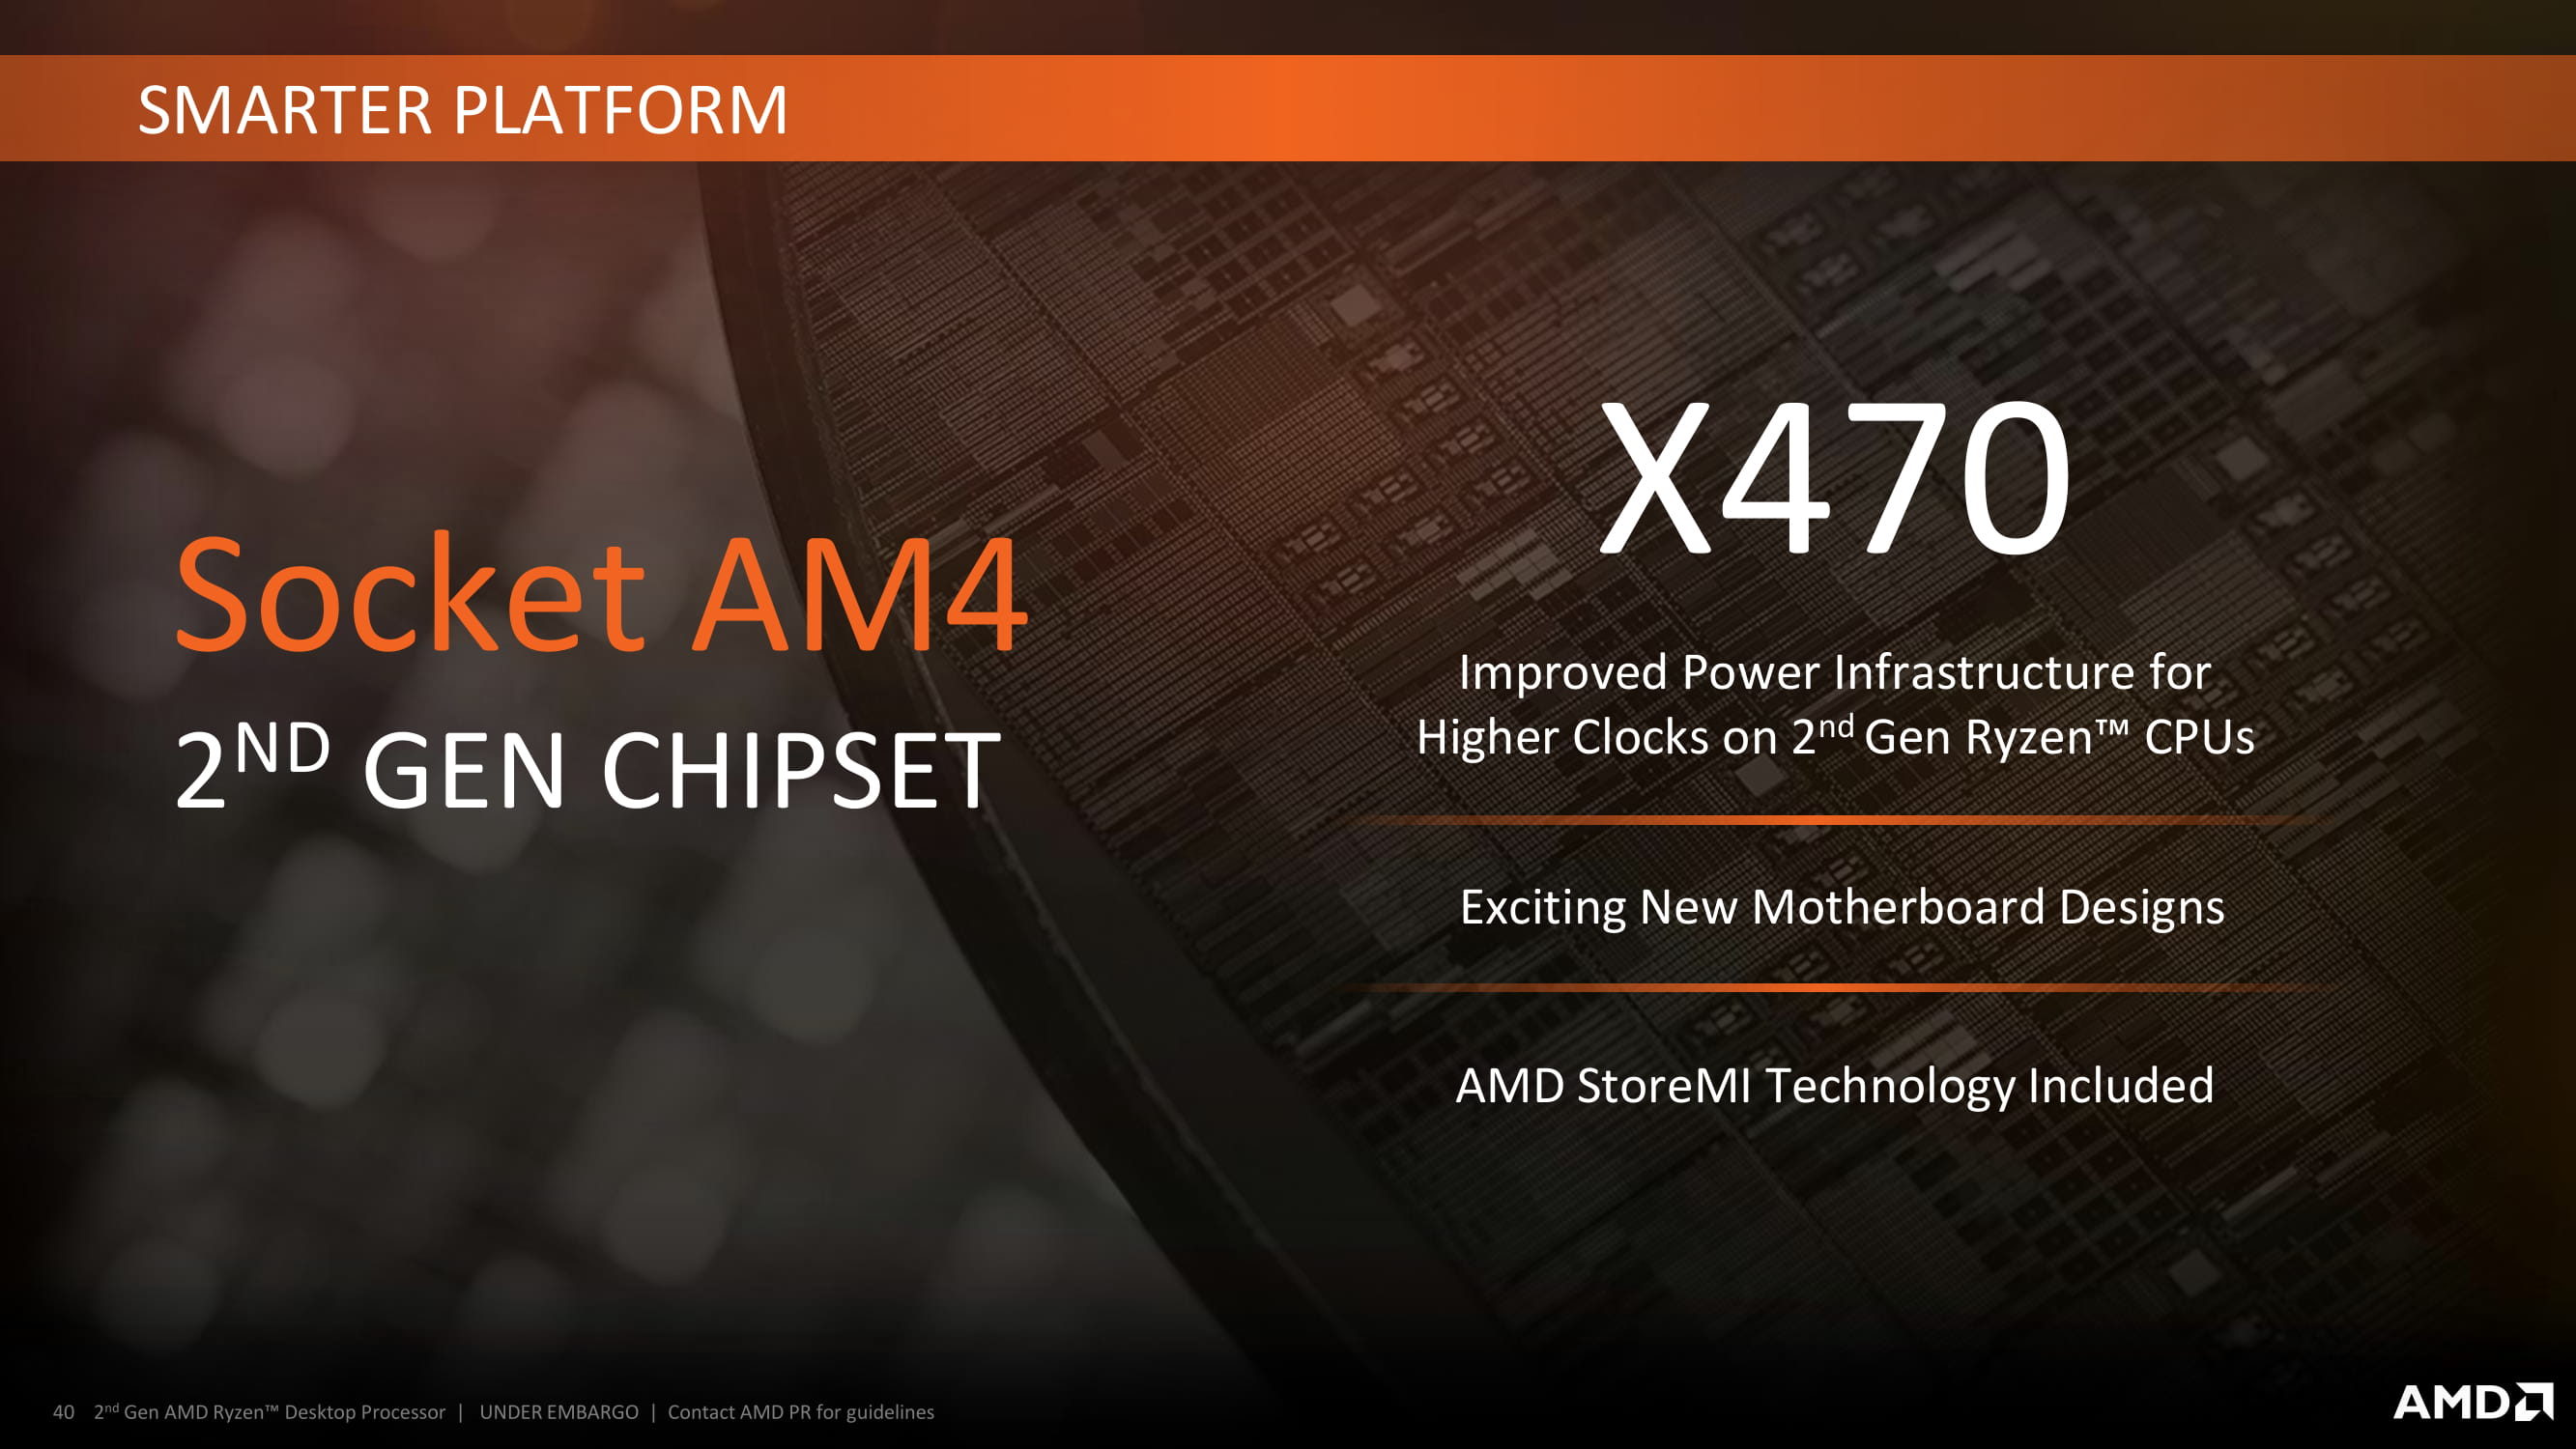 2nd Gen AMD Ryzen Desktop Processor-2-40.jpg